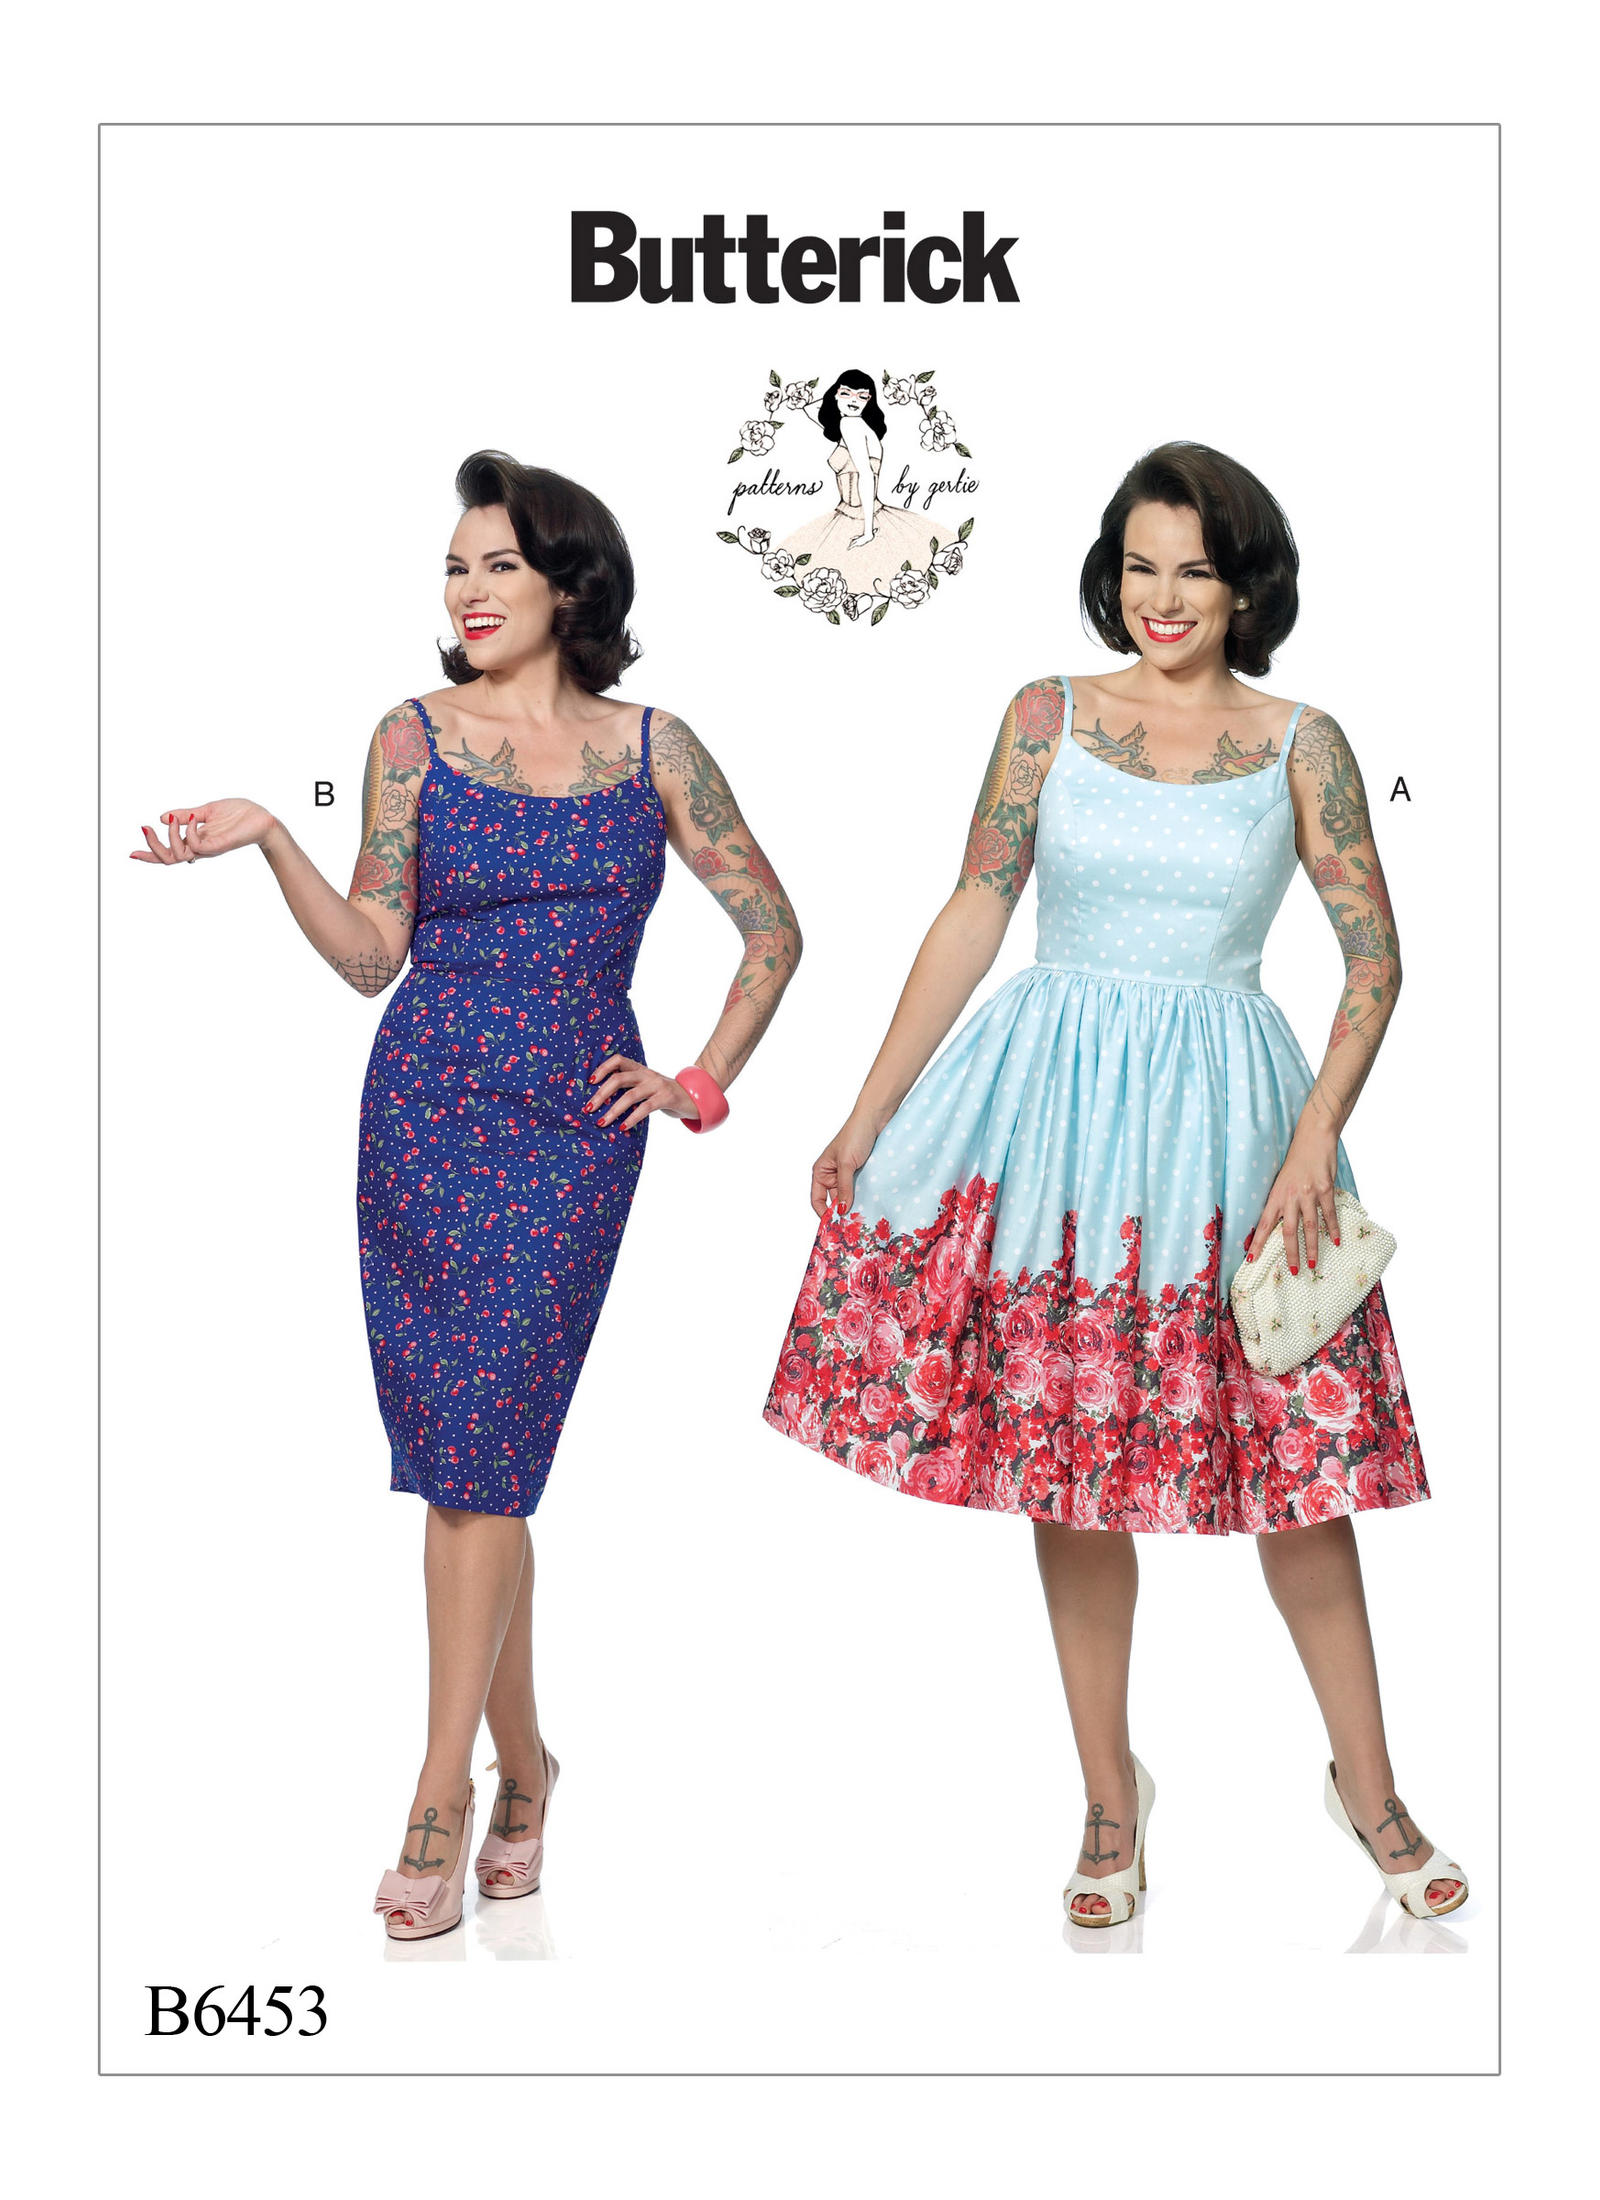 Butterick Misses' Princess Seam Dresses with Straight or Gathered Skirt 6453